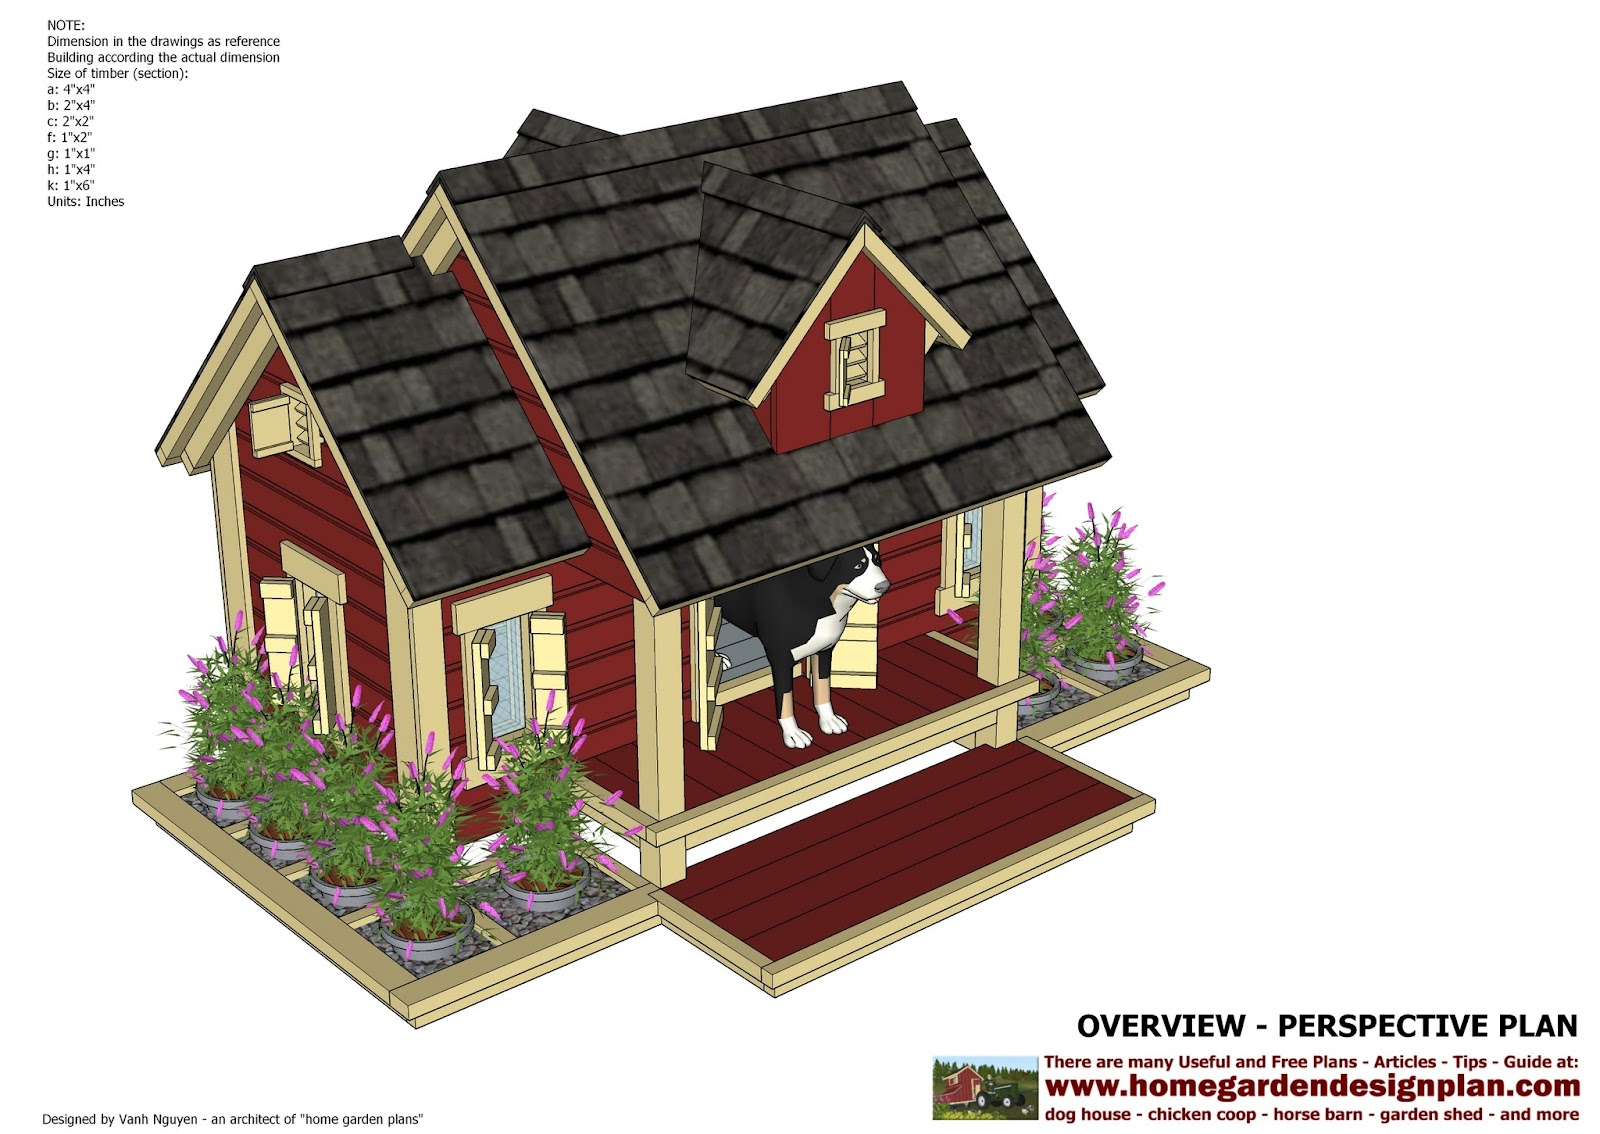 insulated dog house plans pdf With insulated dog house plans pdf